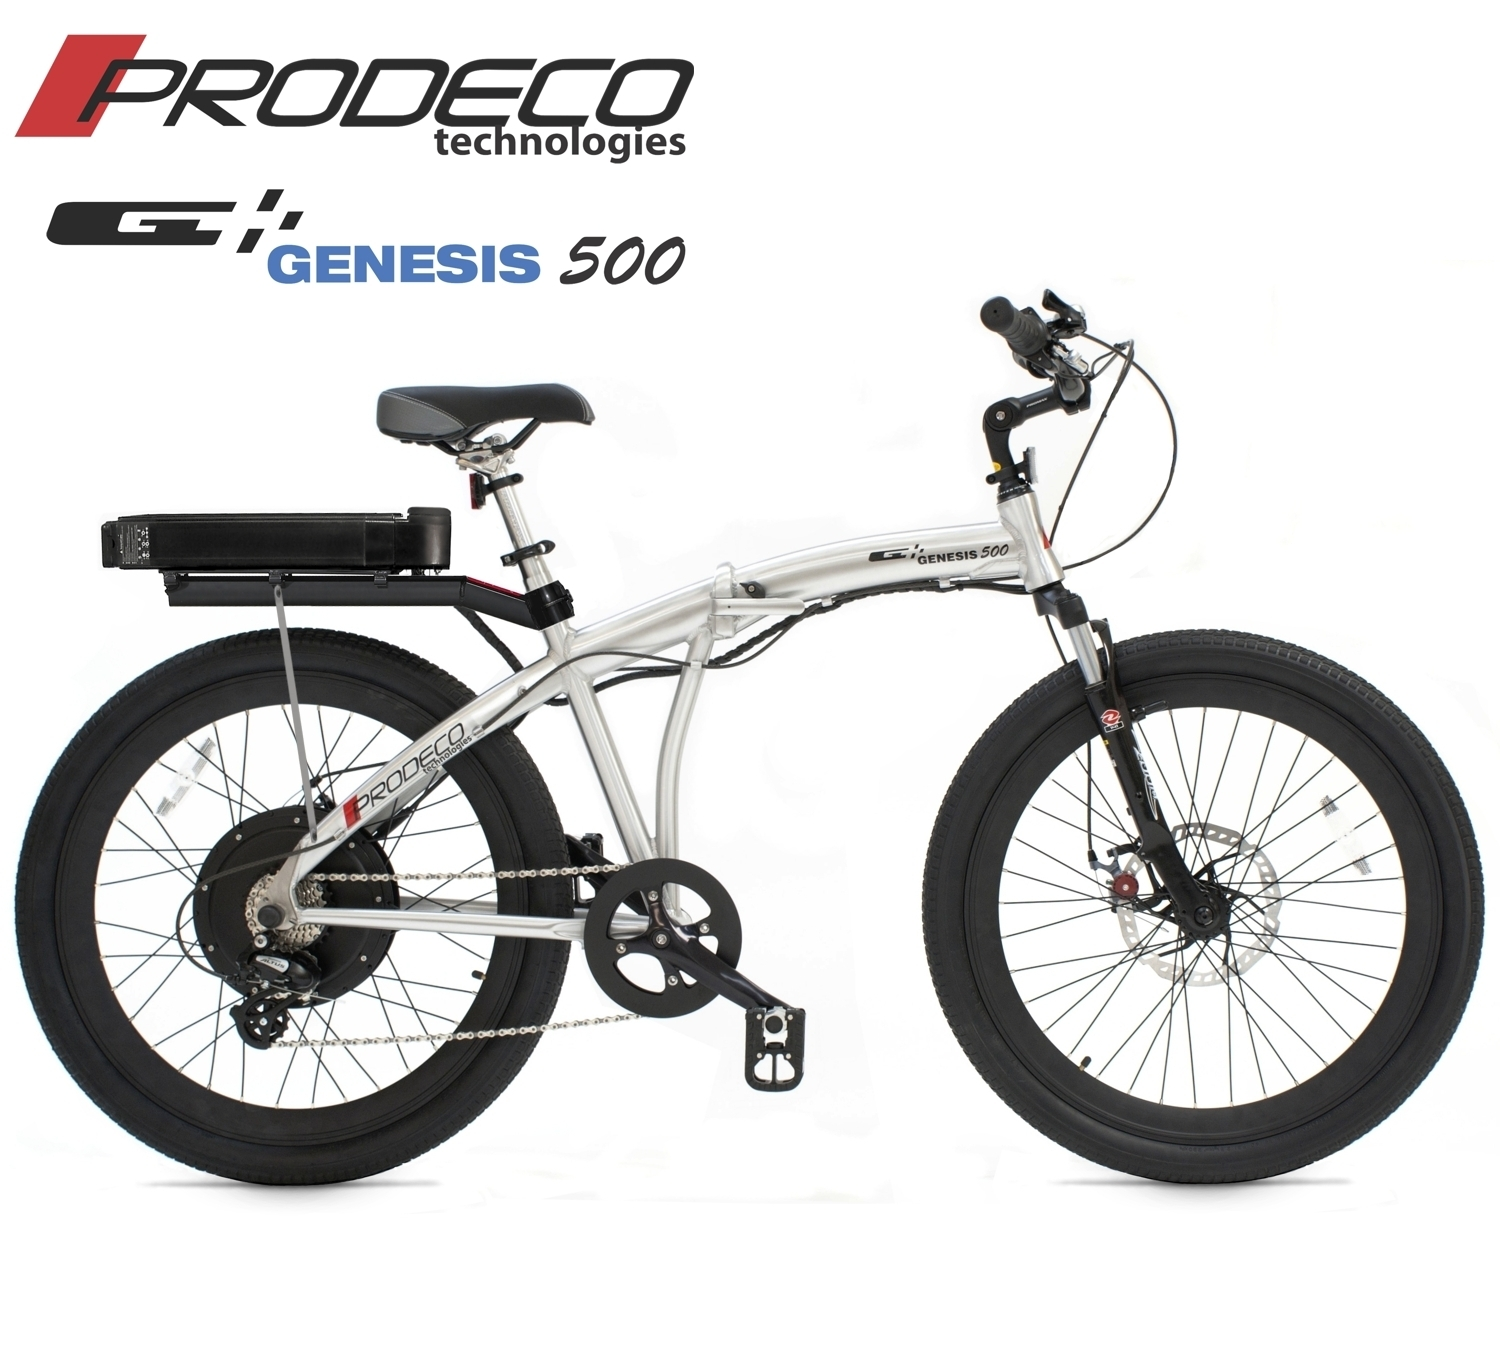 countyimports com motorcycles scooters - Genesis X 500W